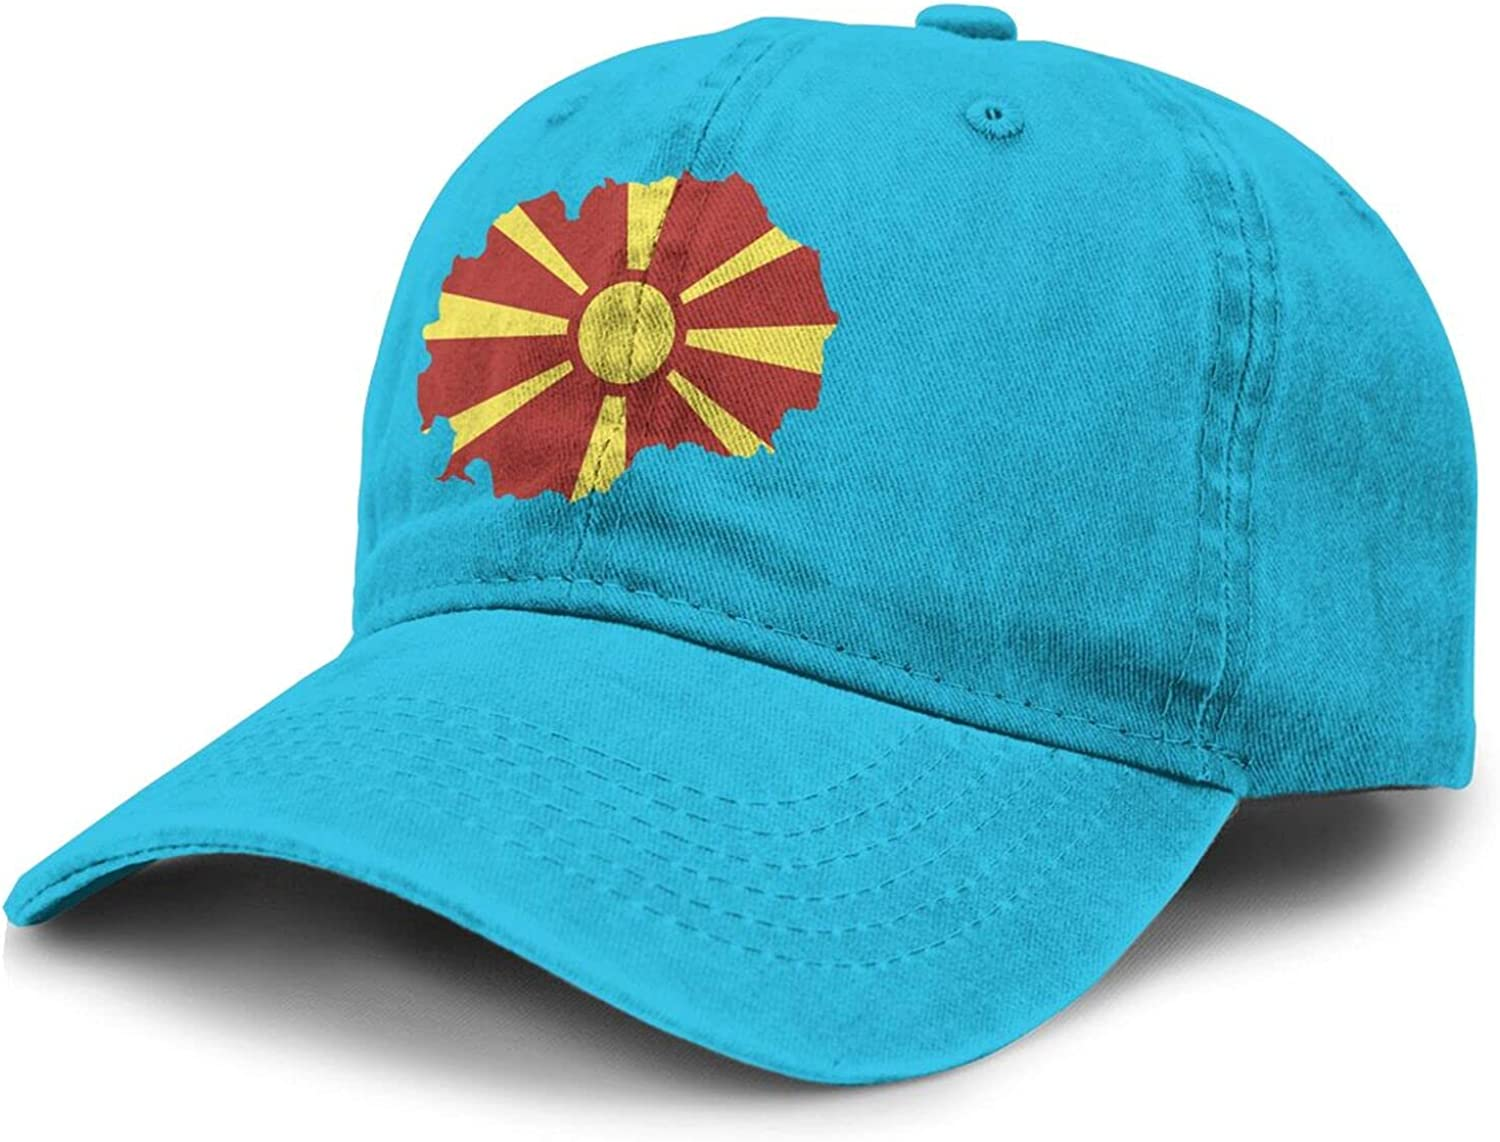 PARKNOTES Macedonia Map Country of Europe Cheap and Durable Adult Cowboy Hat Unisex